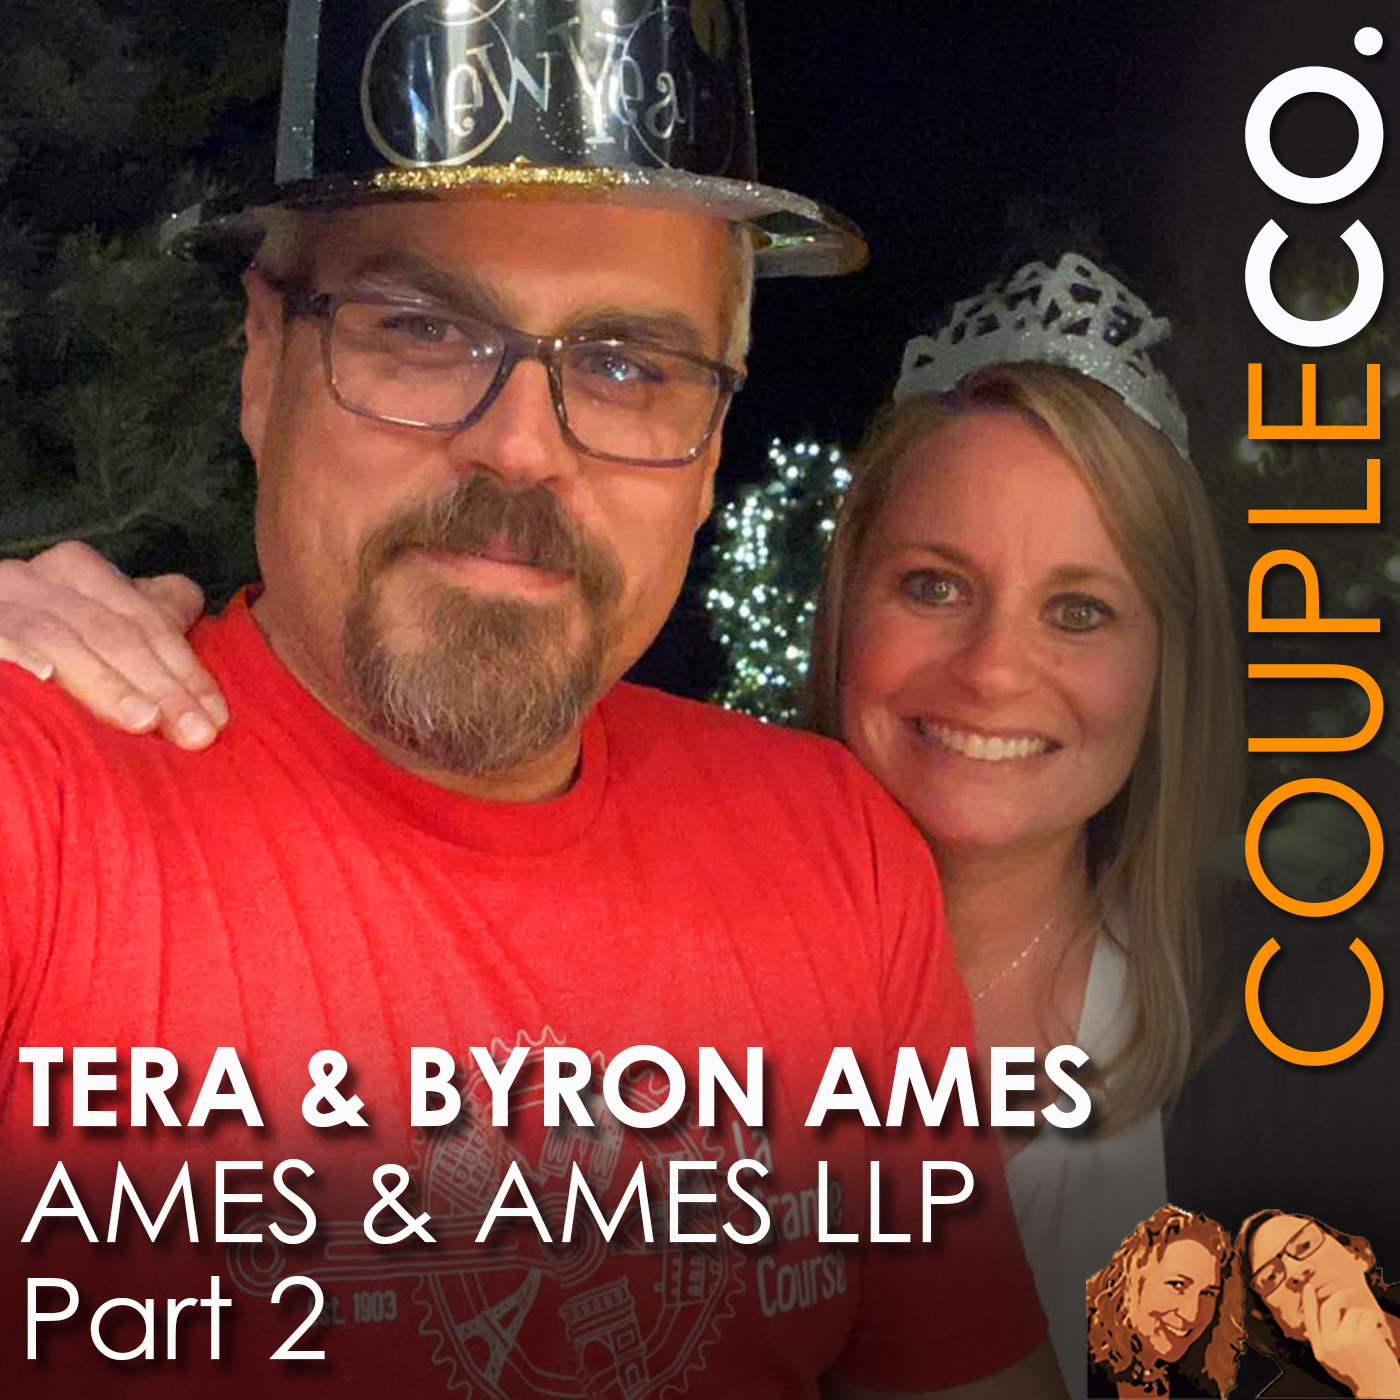 Educated In Argument: Tera & Byron Ames of Ames & Ames LLP, UT & NV, Part 2